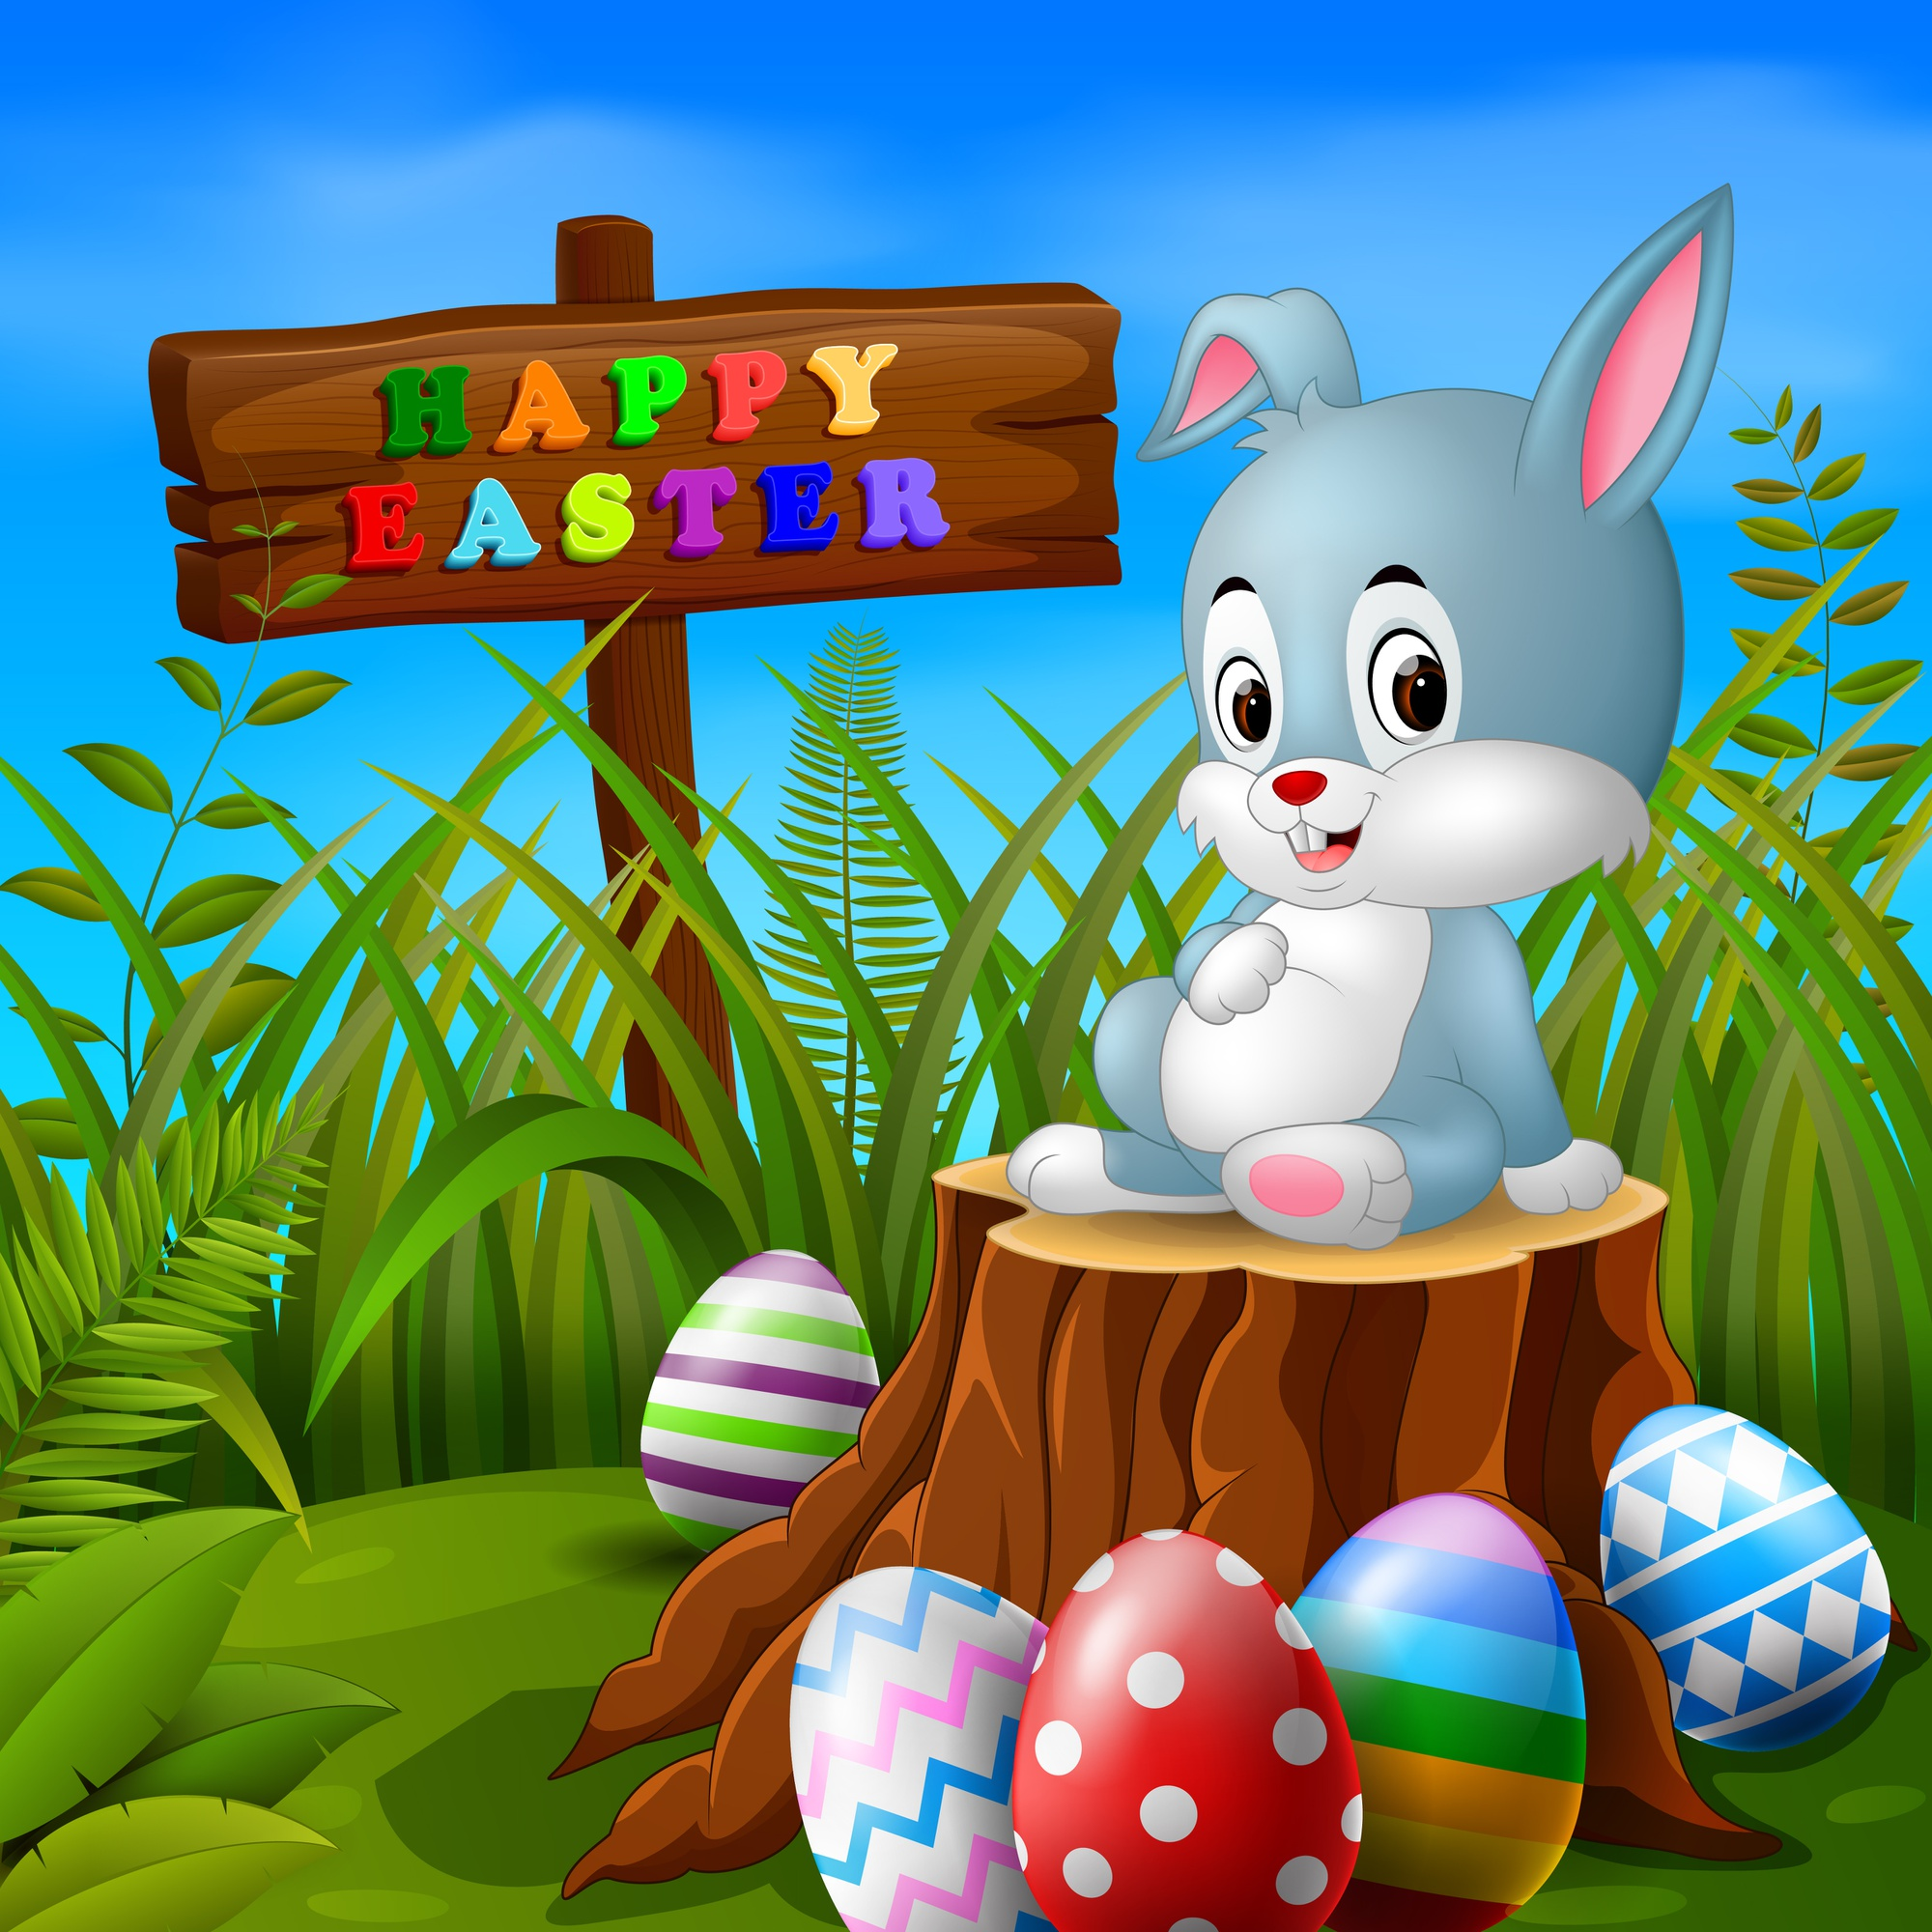 Easter bunny and eggs in garden